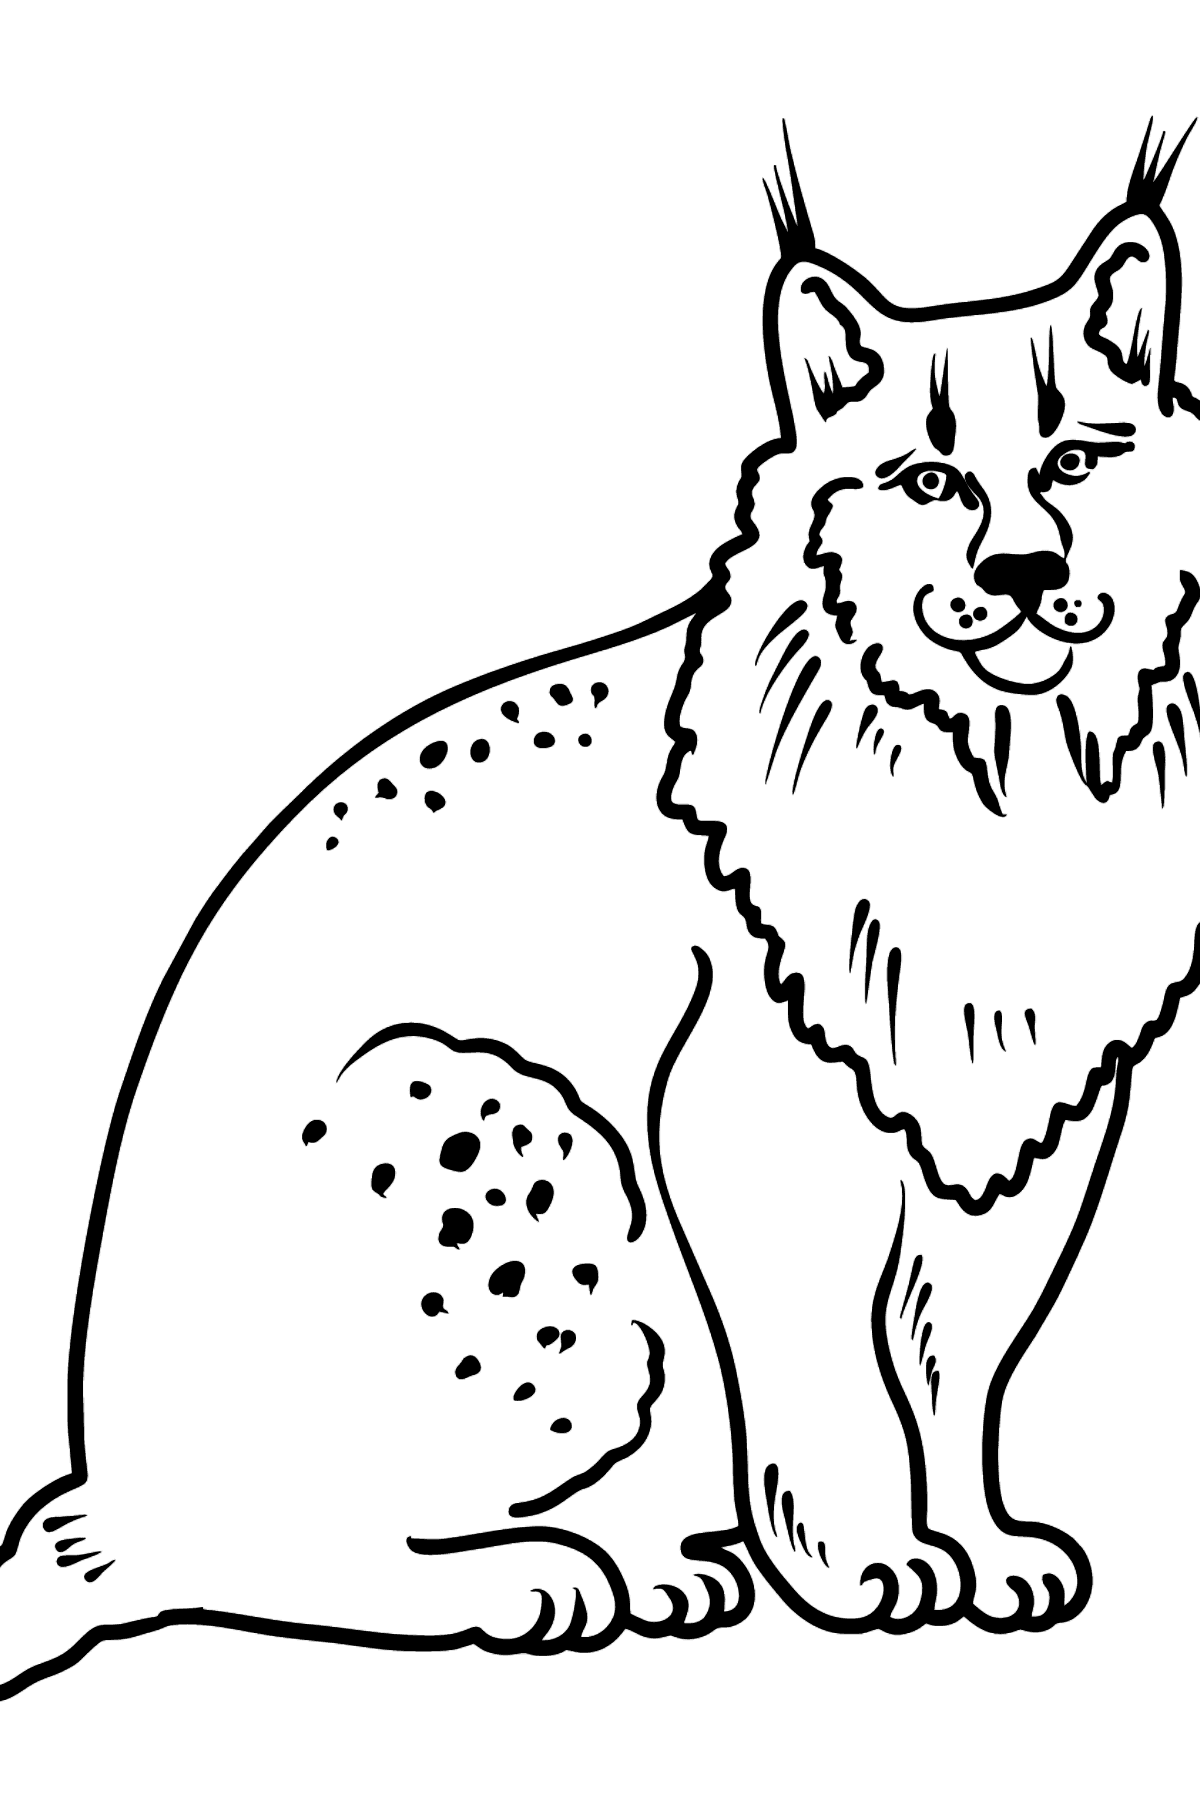 Lynx coloring page - Coloring Pages for Kids